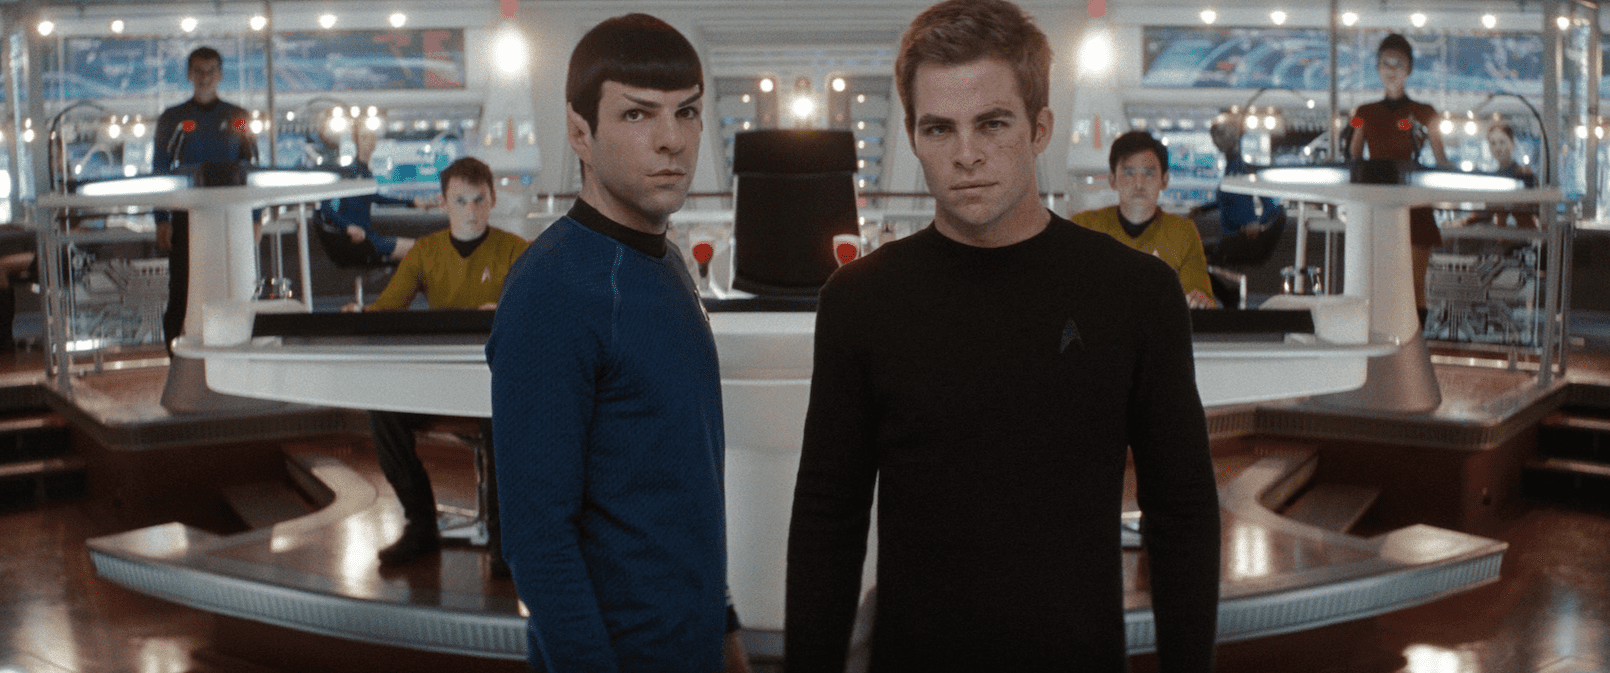 Chris Pine Zachary Quinto Star Trek